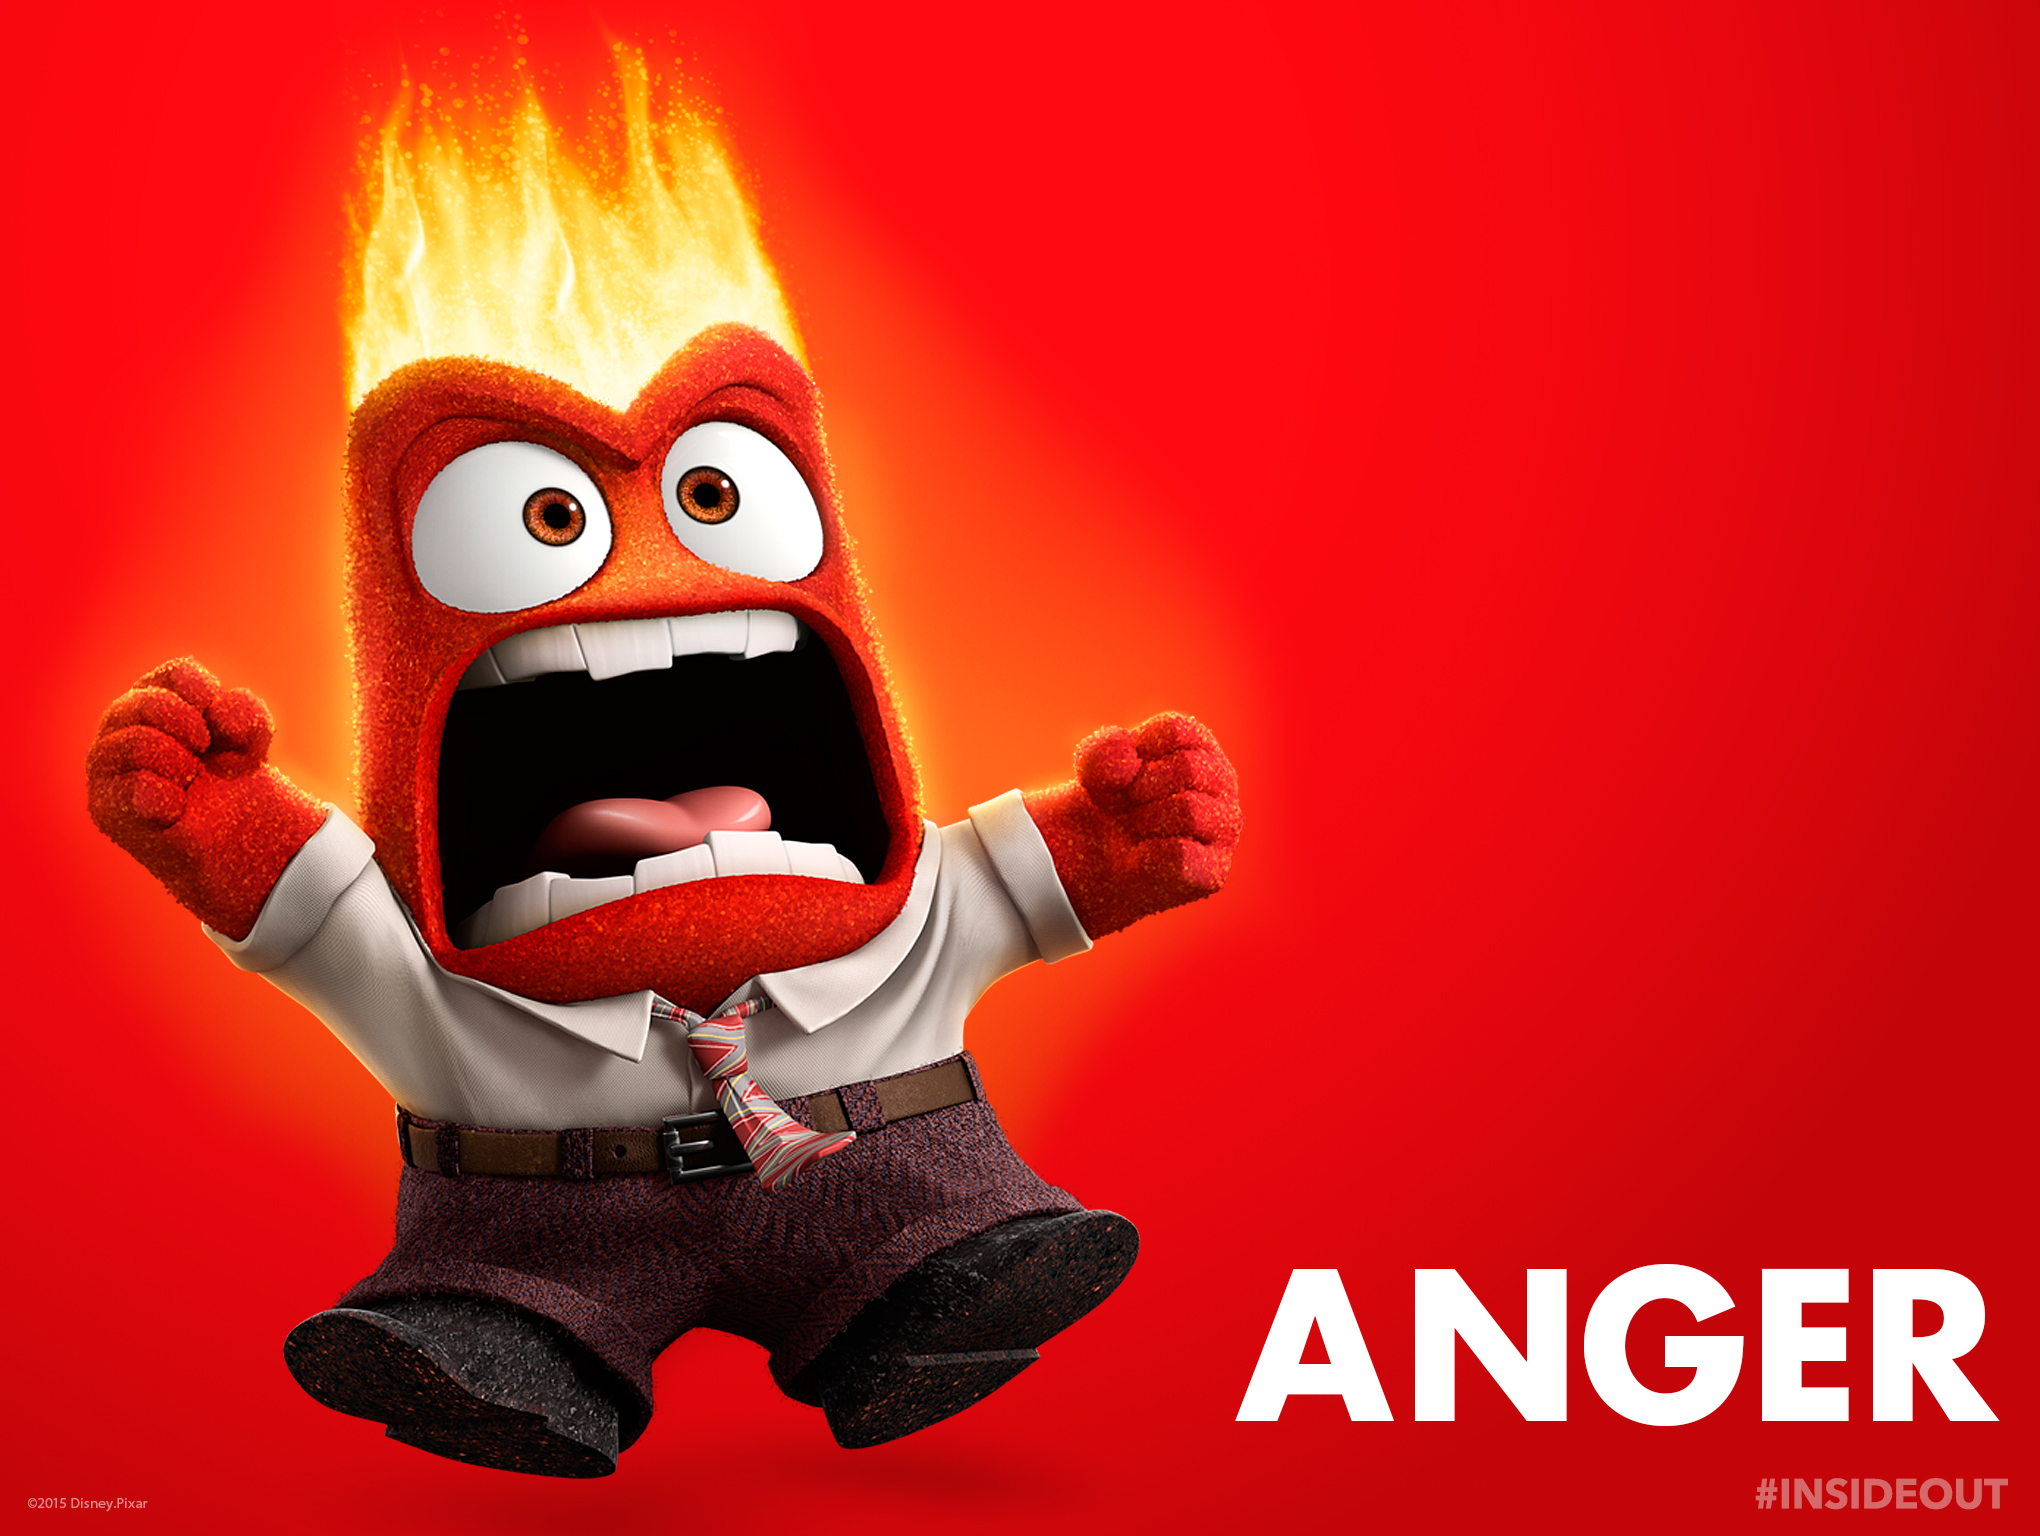 Inside pictures of out anger from